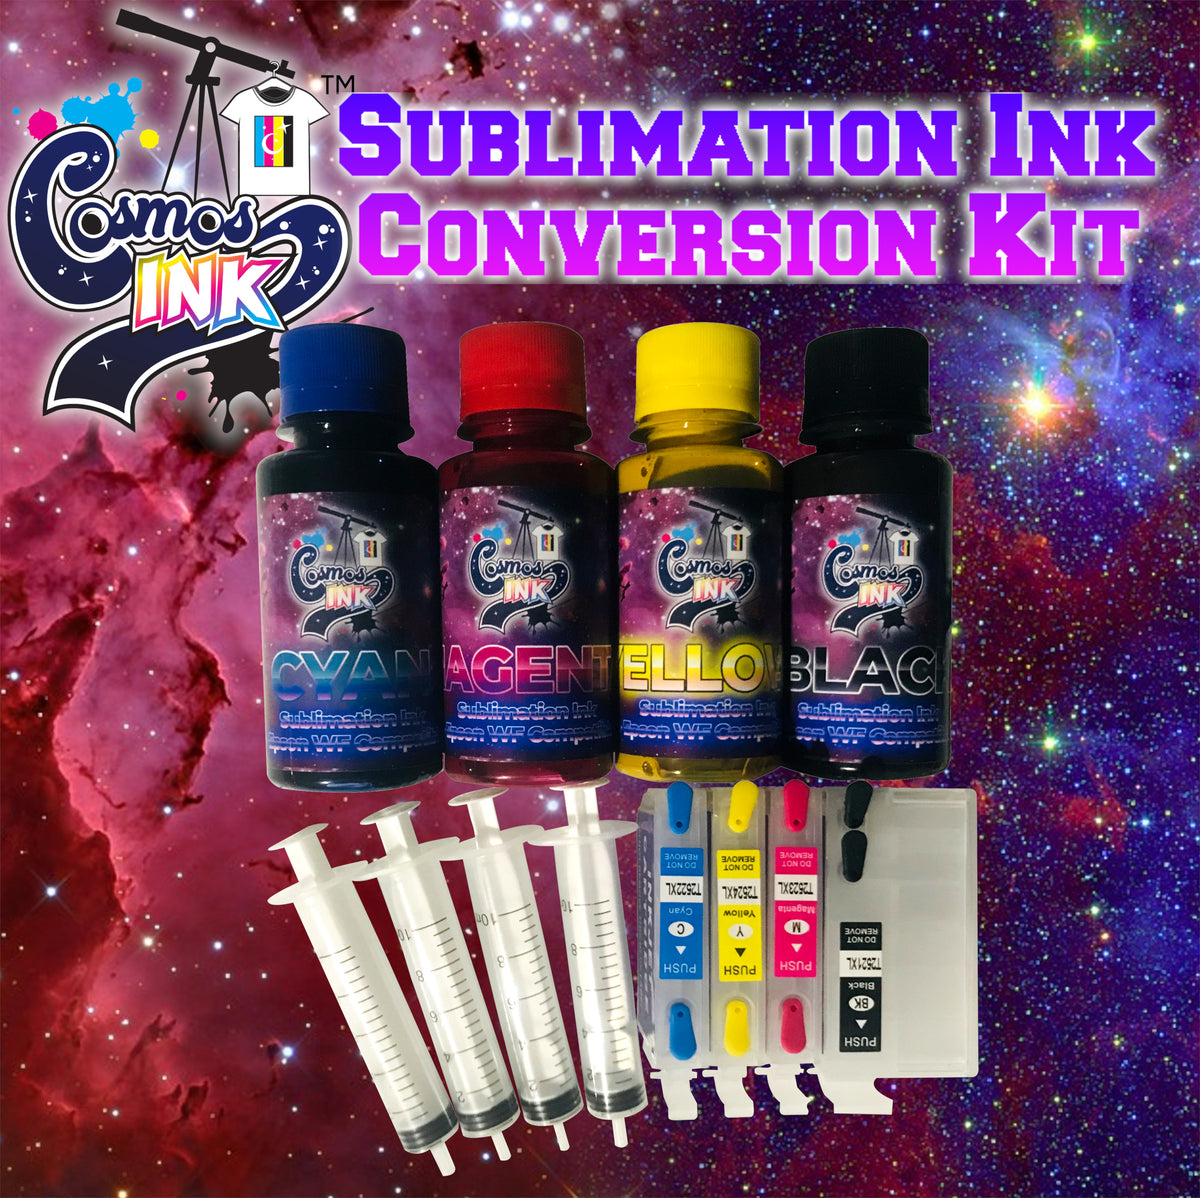 (Restocking On September 9th at 8am EST) Sublimation Ink Conversion Kit for  Epson WF-7710, 7720, 7610, 7620, 7110, 7210, 3640, 3620 | Cosmos Ink®